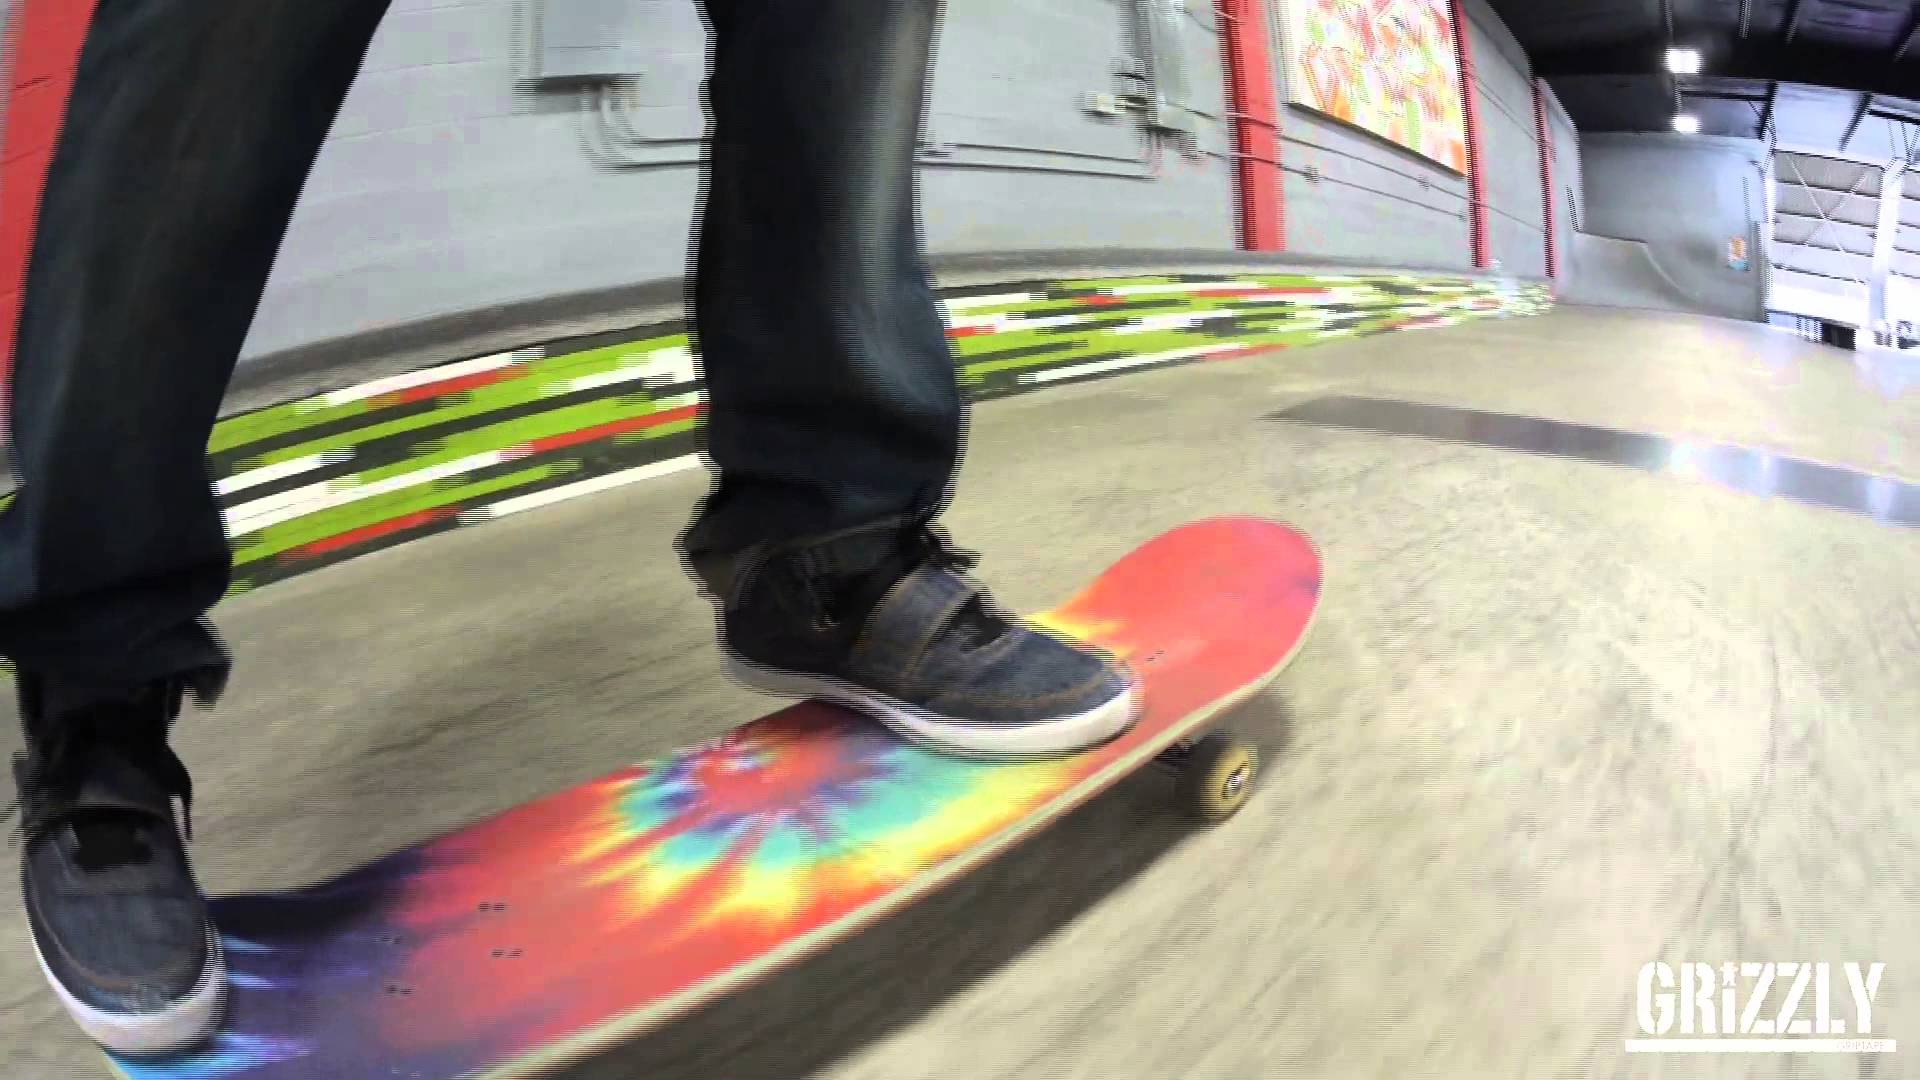 Grizzly grip tape quottie dyequot Commercial with Torey Pudwill 1920x1080